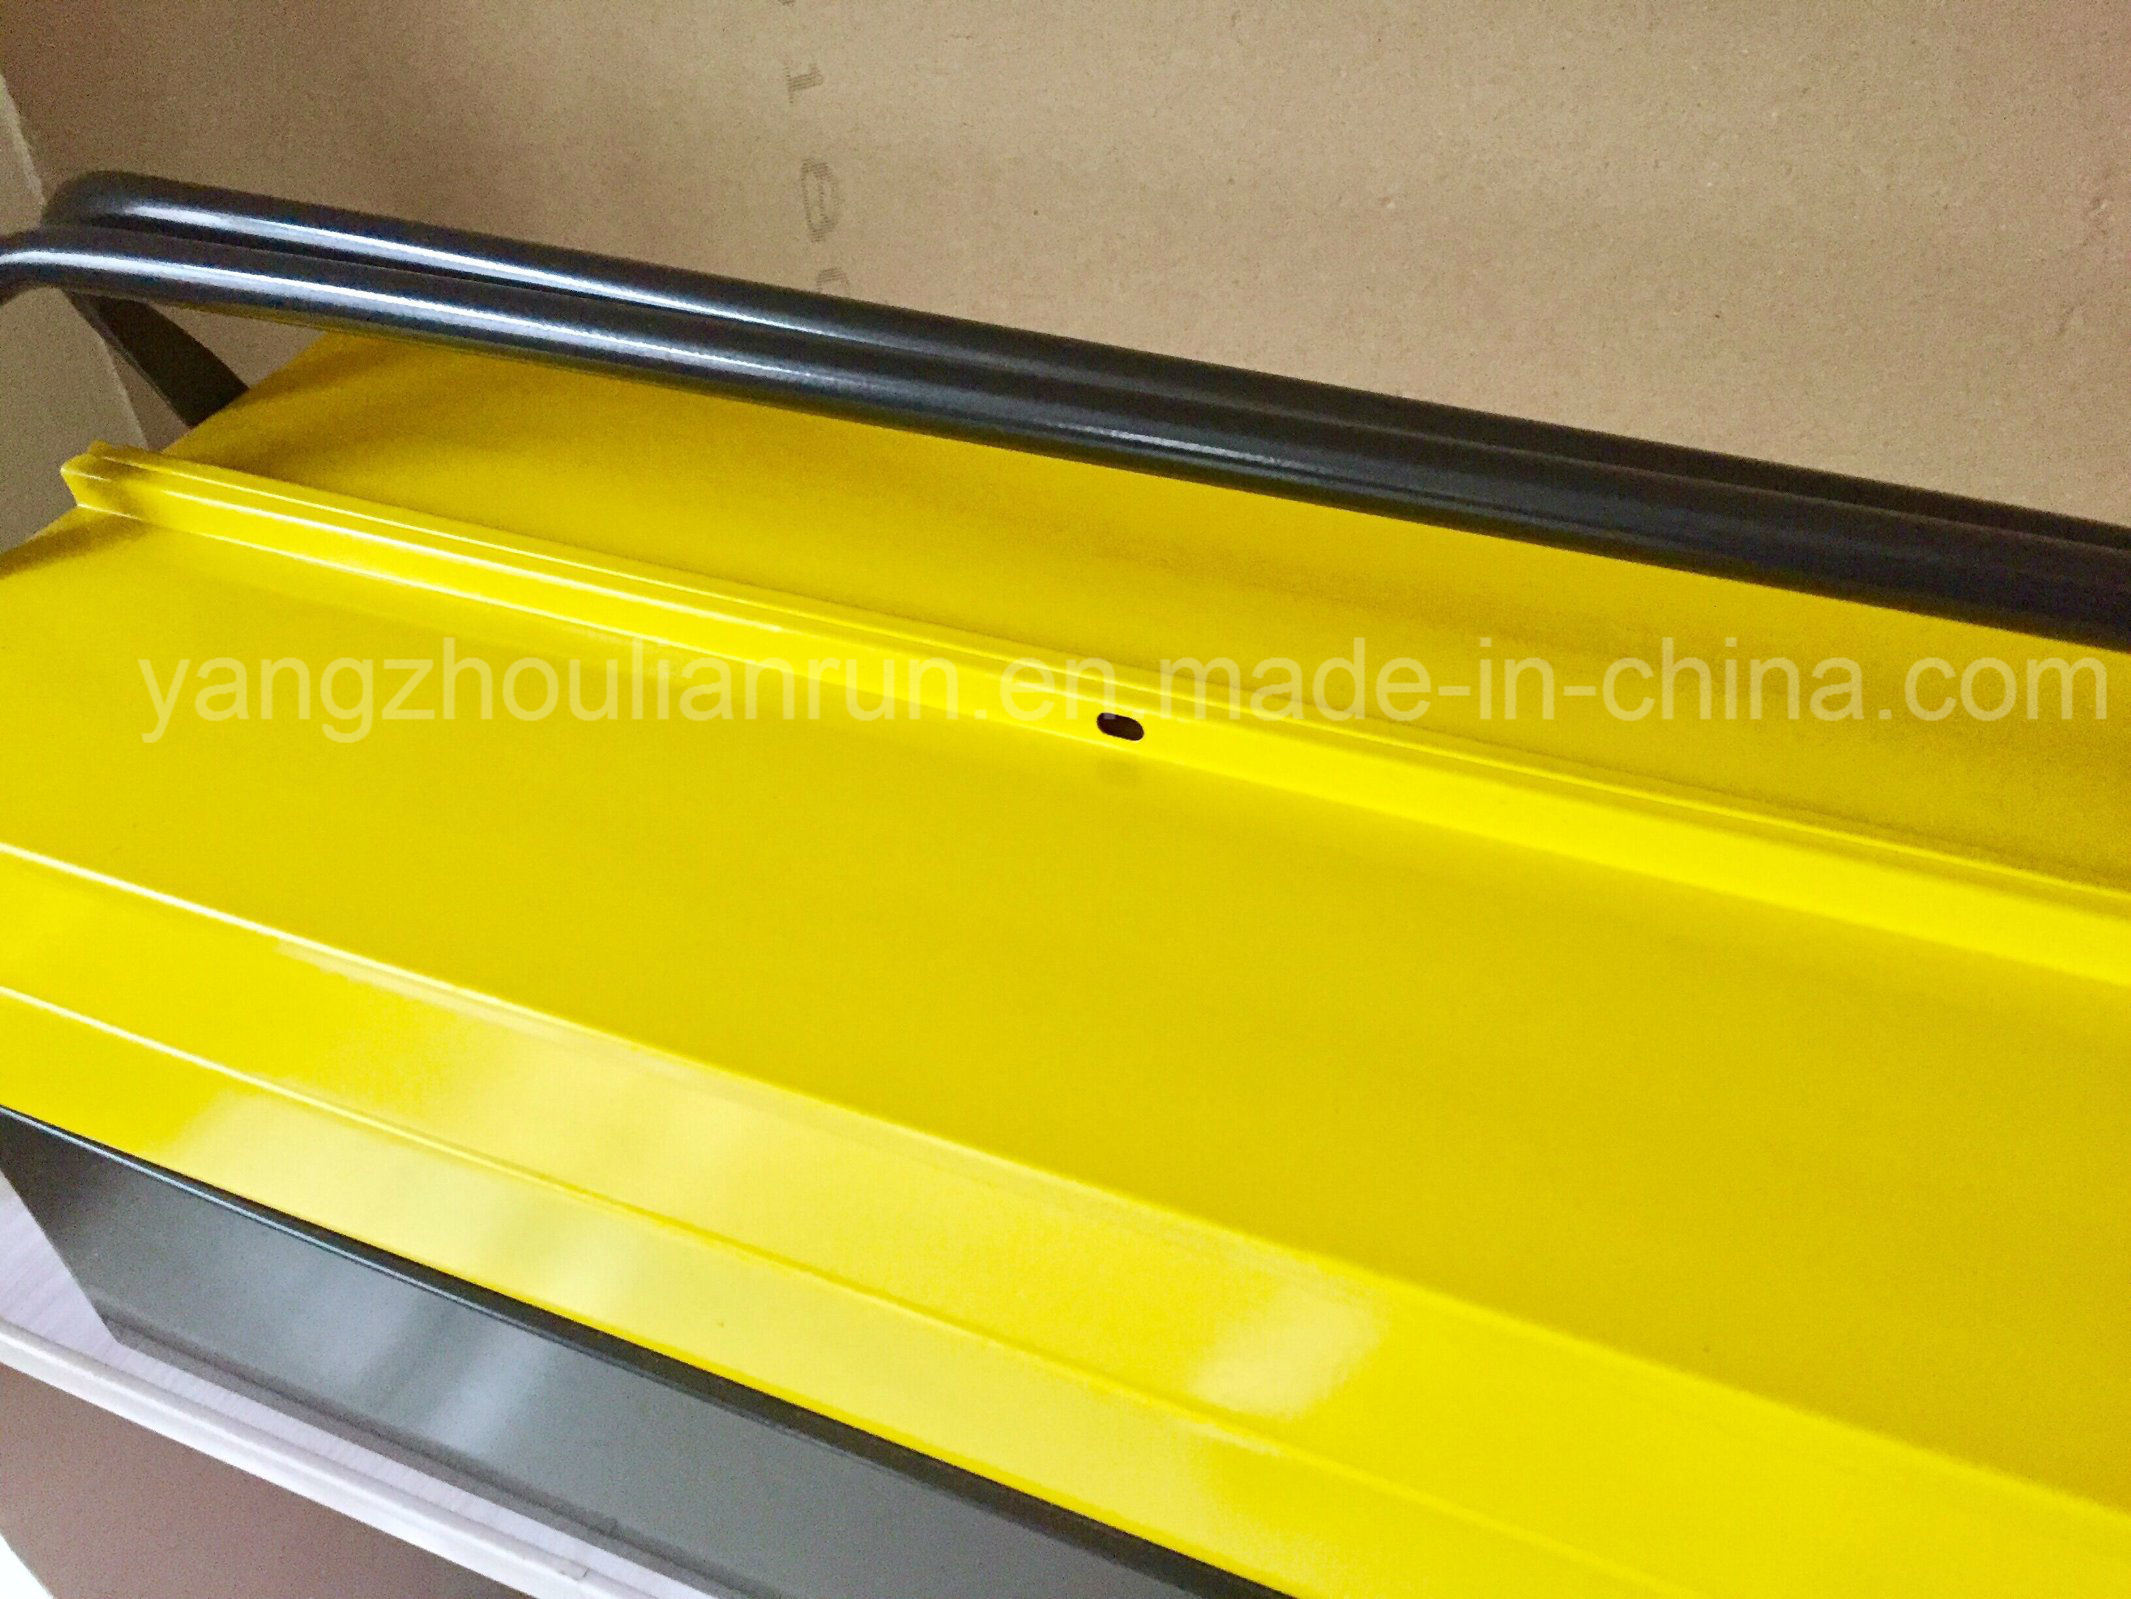 Special Powder Coating for Machine